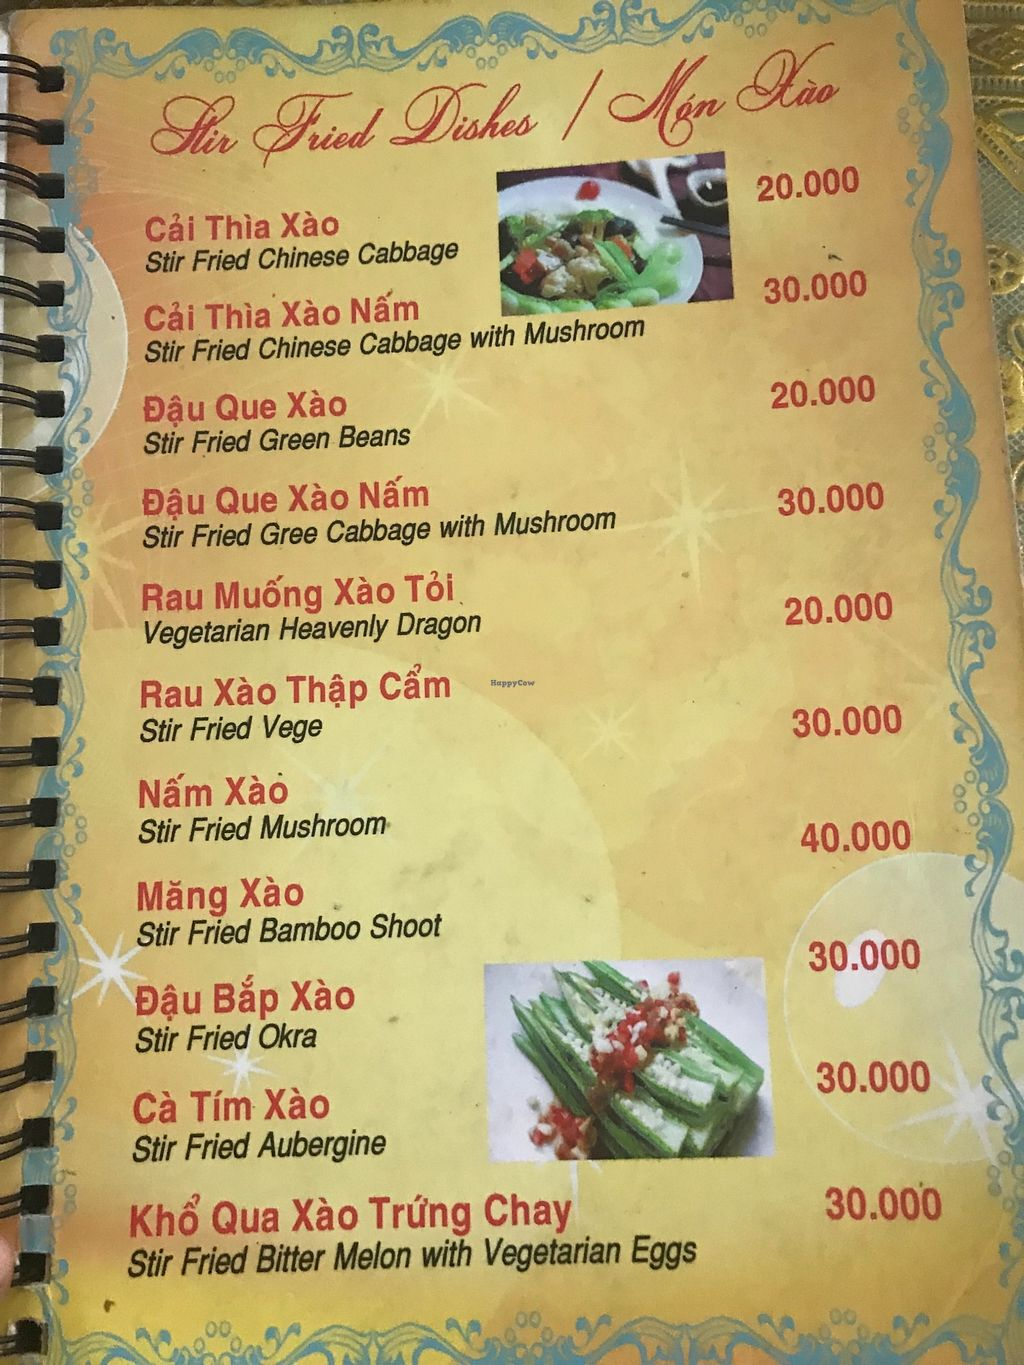 """Photo of Nha Hang Chay  by <a href=""""/members/profile/Avgi"""">Avgi</a> <br/>Menu 6 <br/> February 9, 2018  - <a href='/contact/abuse/image/111577/356681'>Report</a>"""